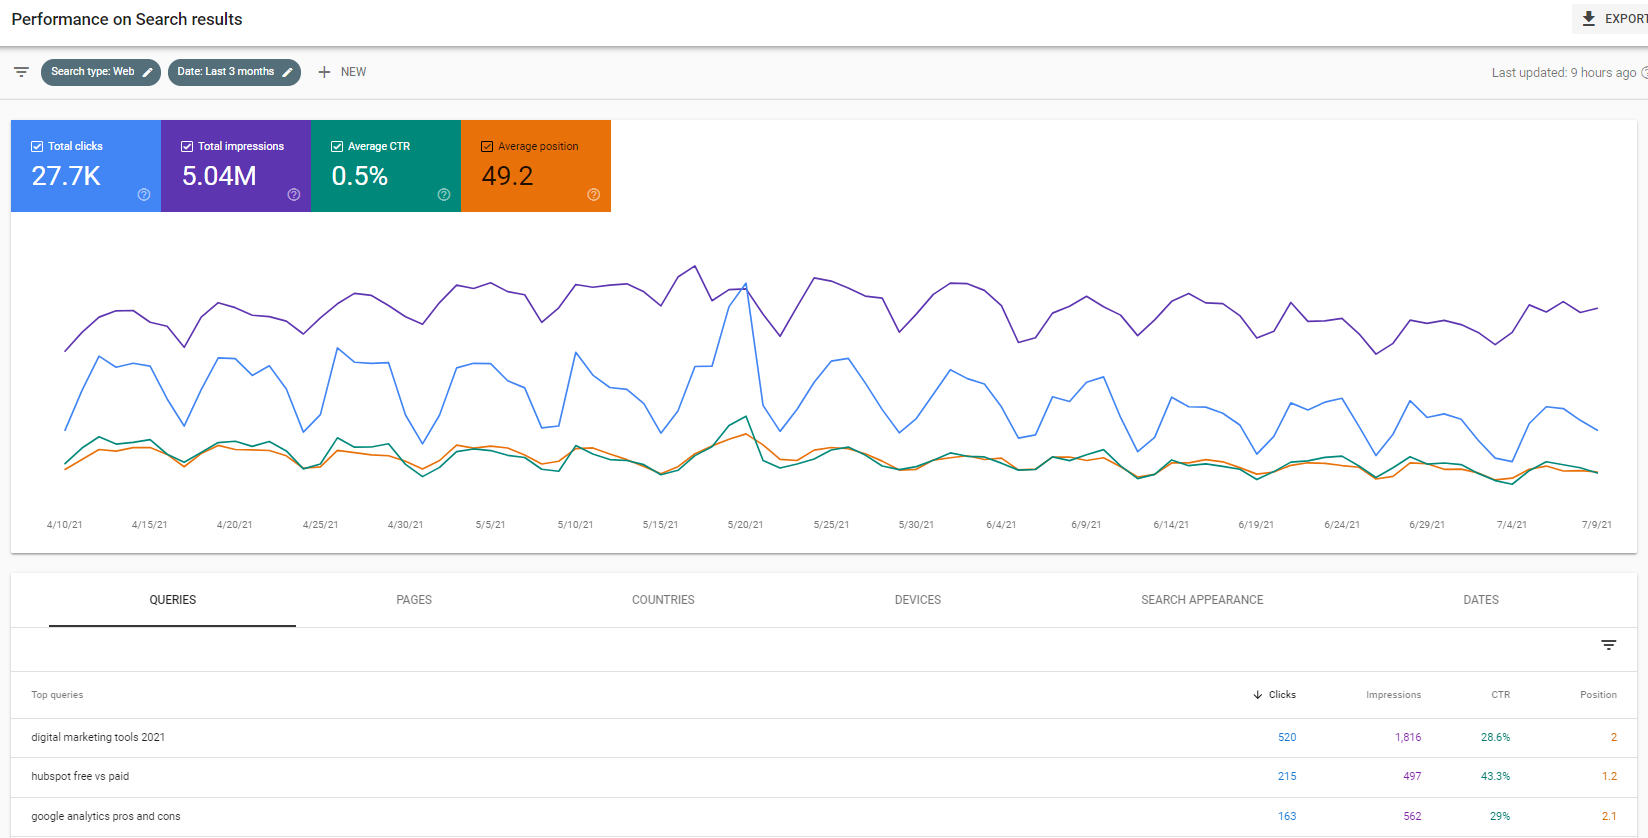 Search Console Performance on Search results